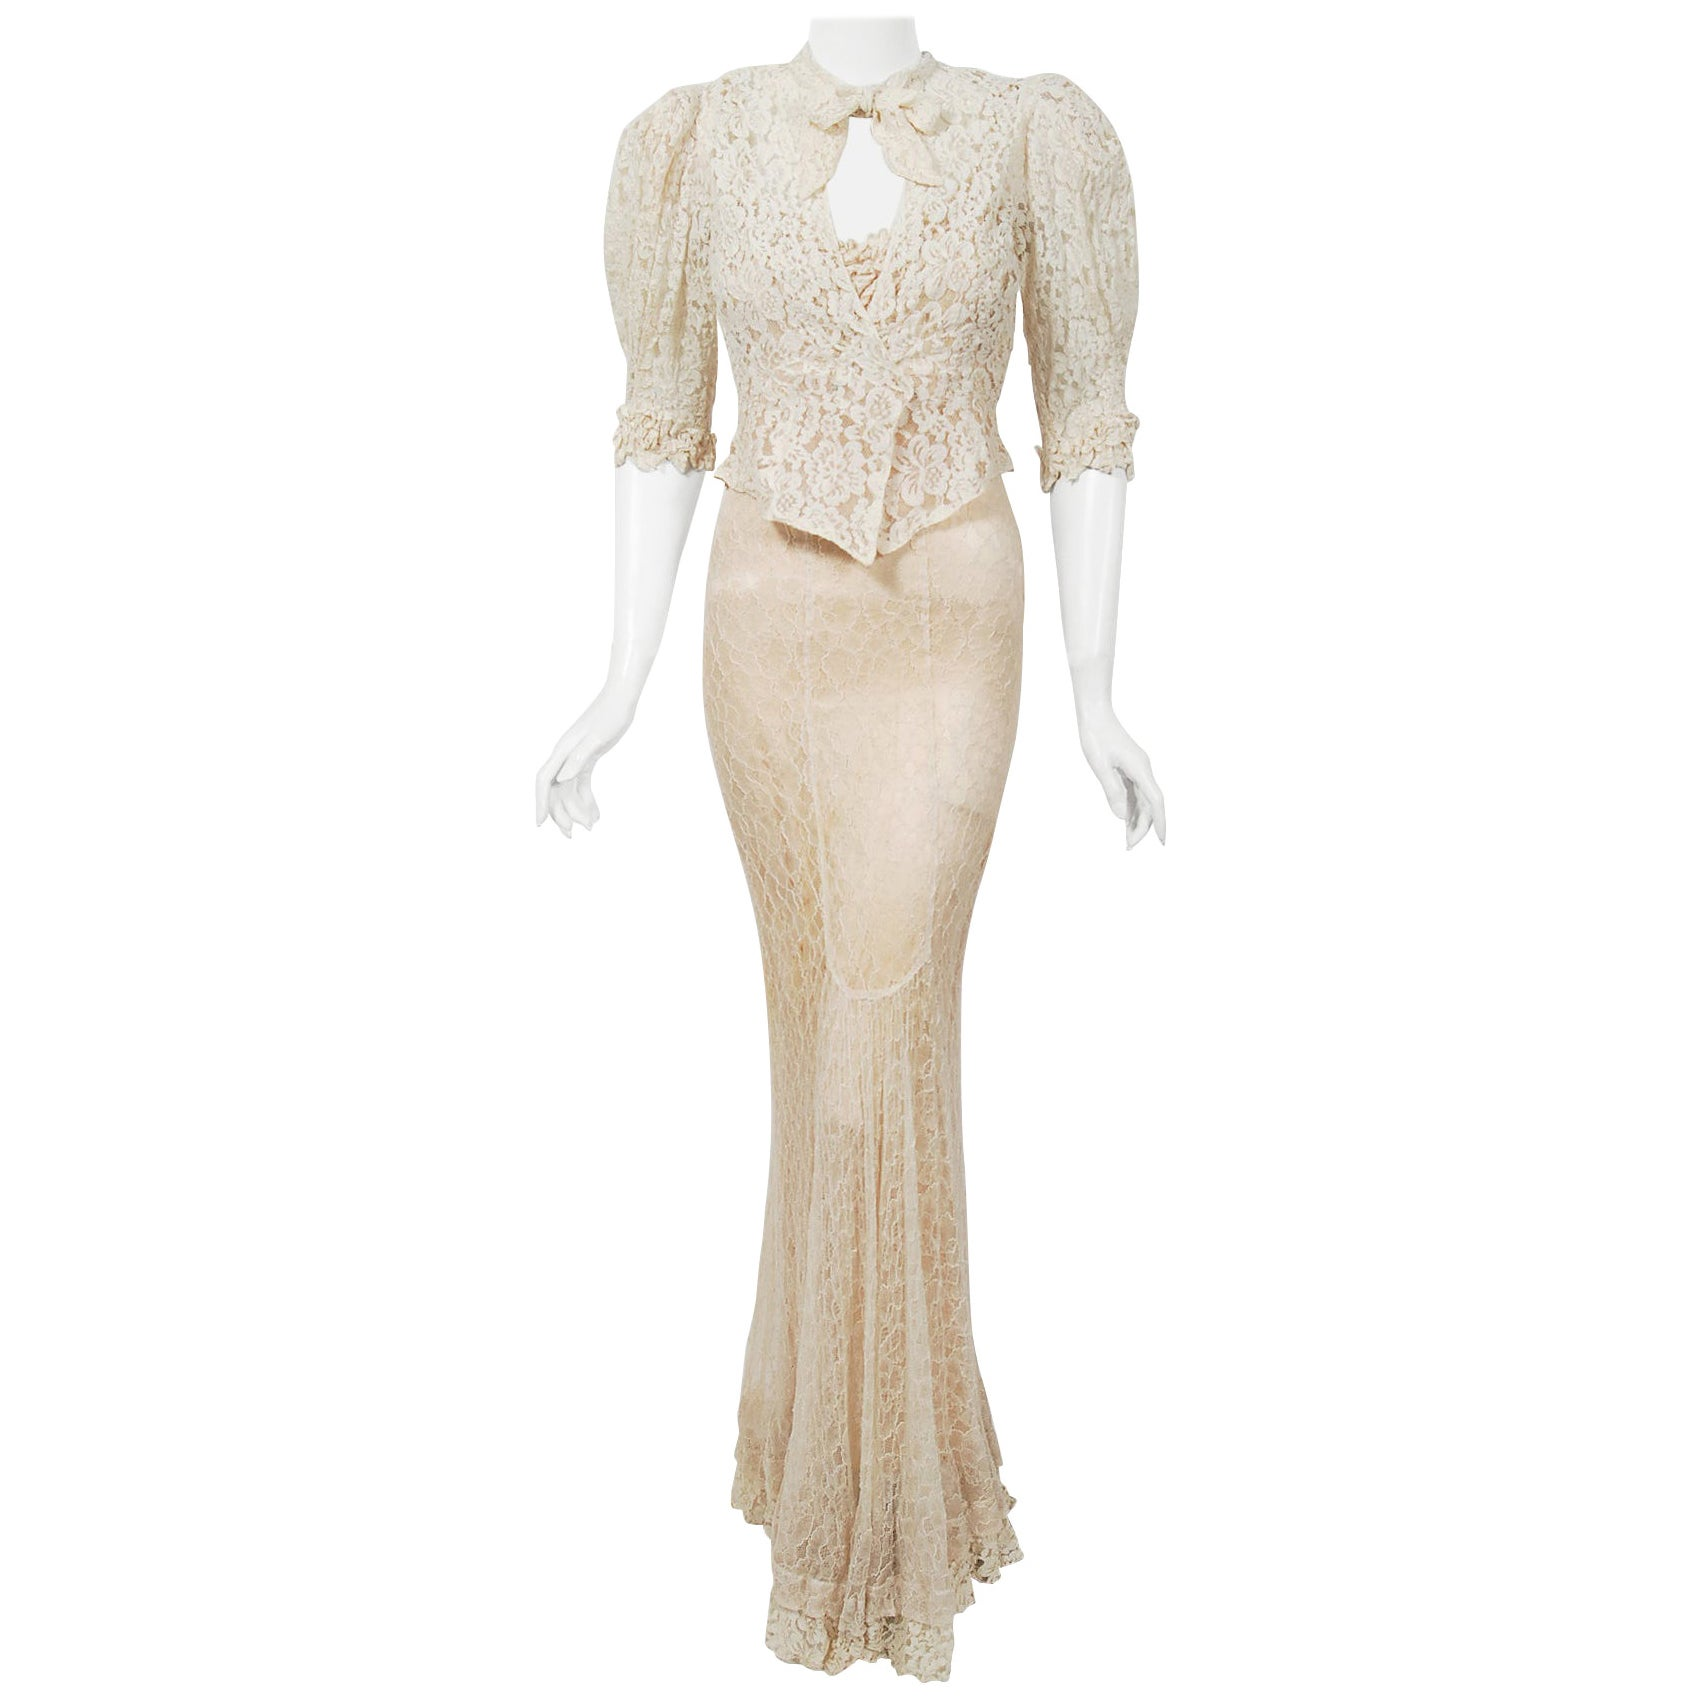 Vintage 1930's Couture Ivory Lace Nude Illusion Backless Bias-Cut Gown & Jacket